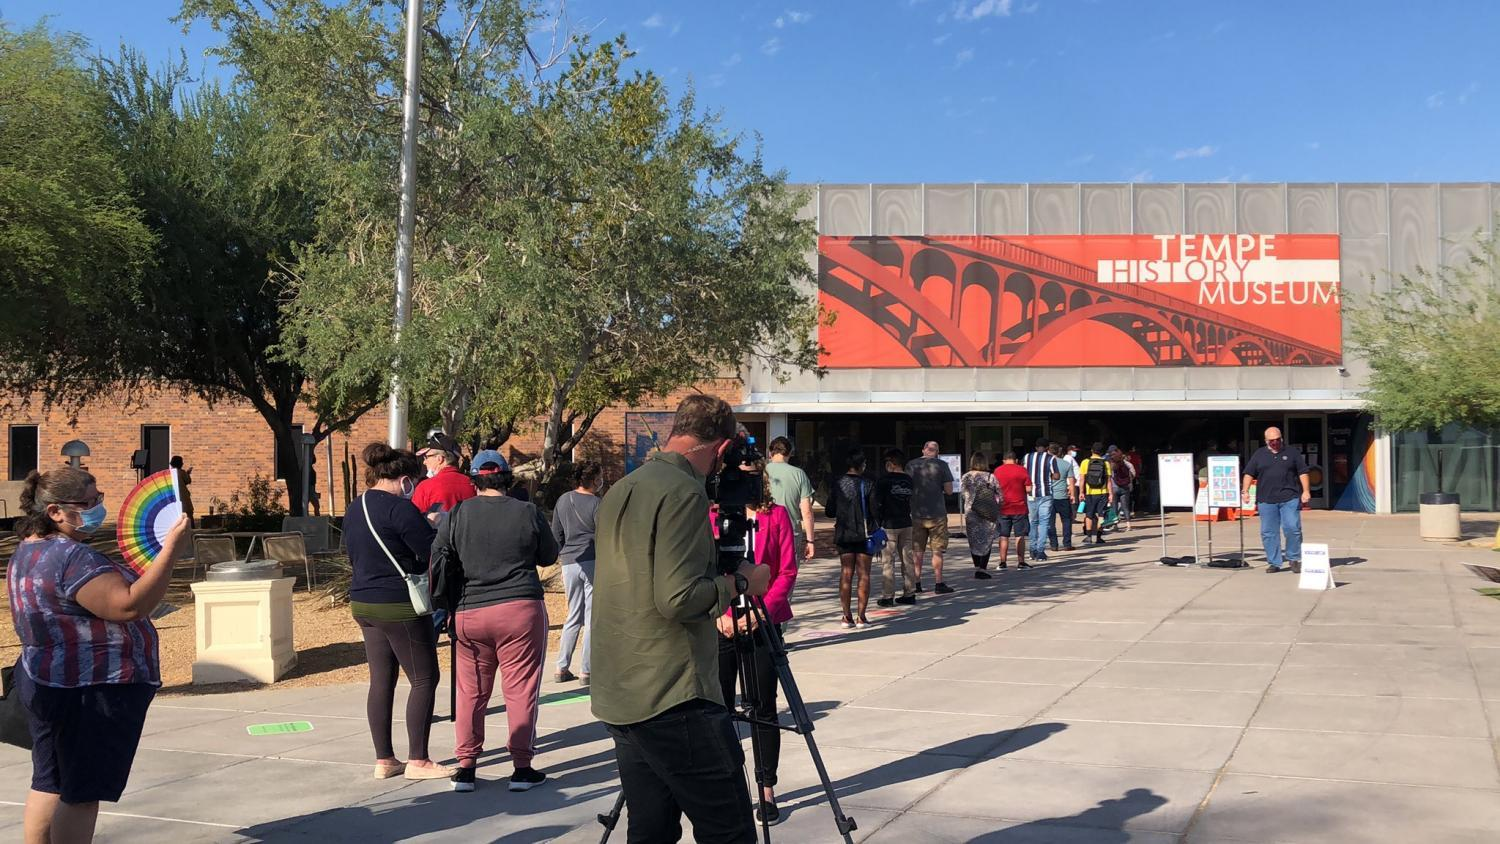 Voters line up at the Tempe History Museum